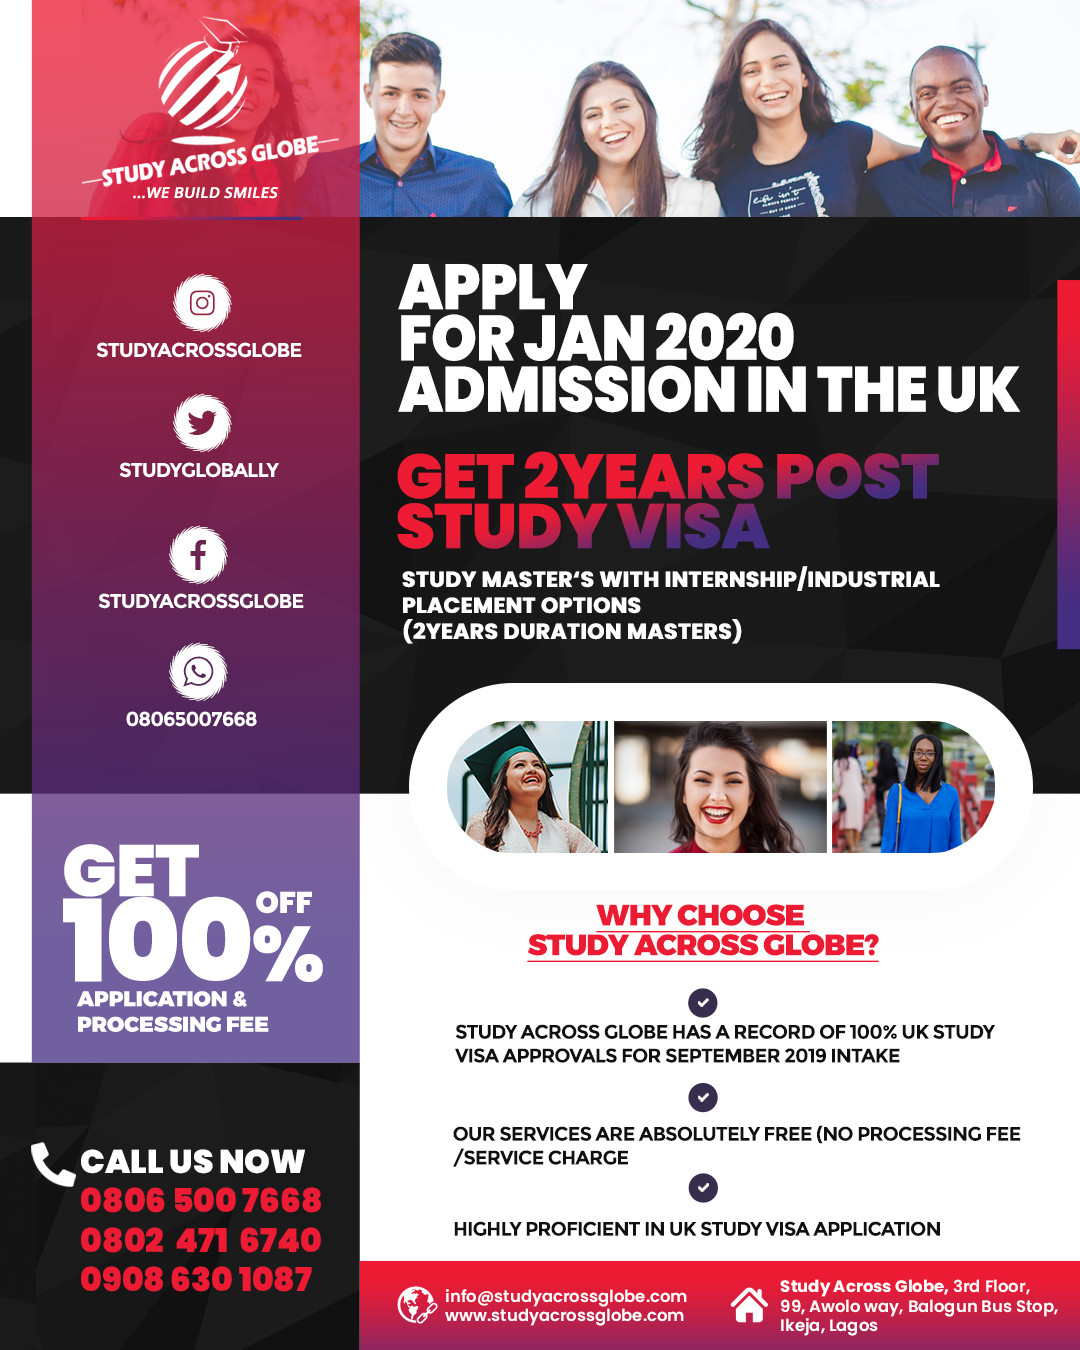 Apply For Jan/Feb 2020 Admissions In The Uk (+2Years Post Study Visa)